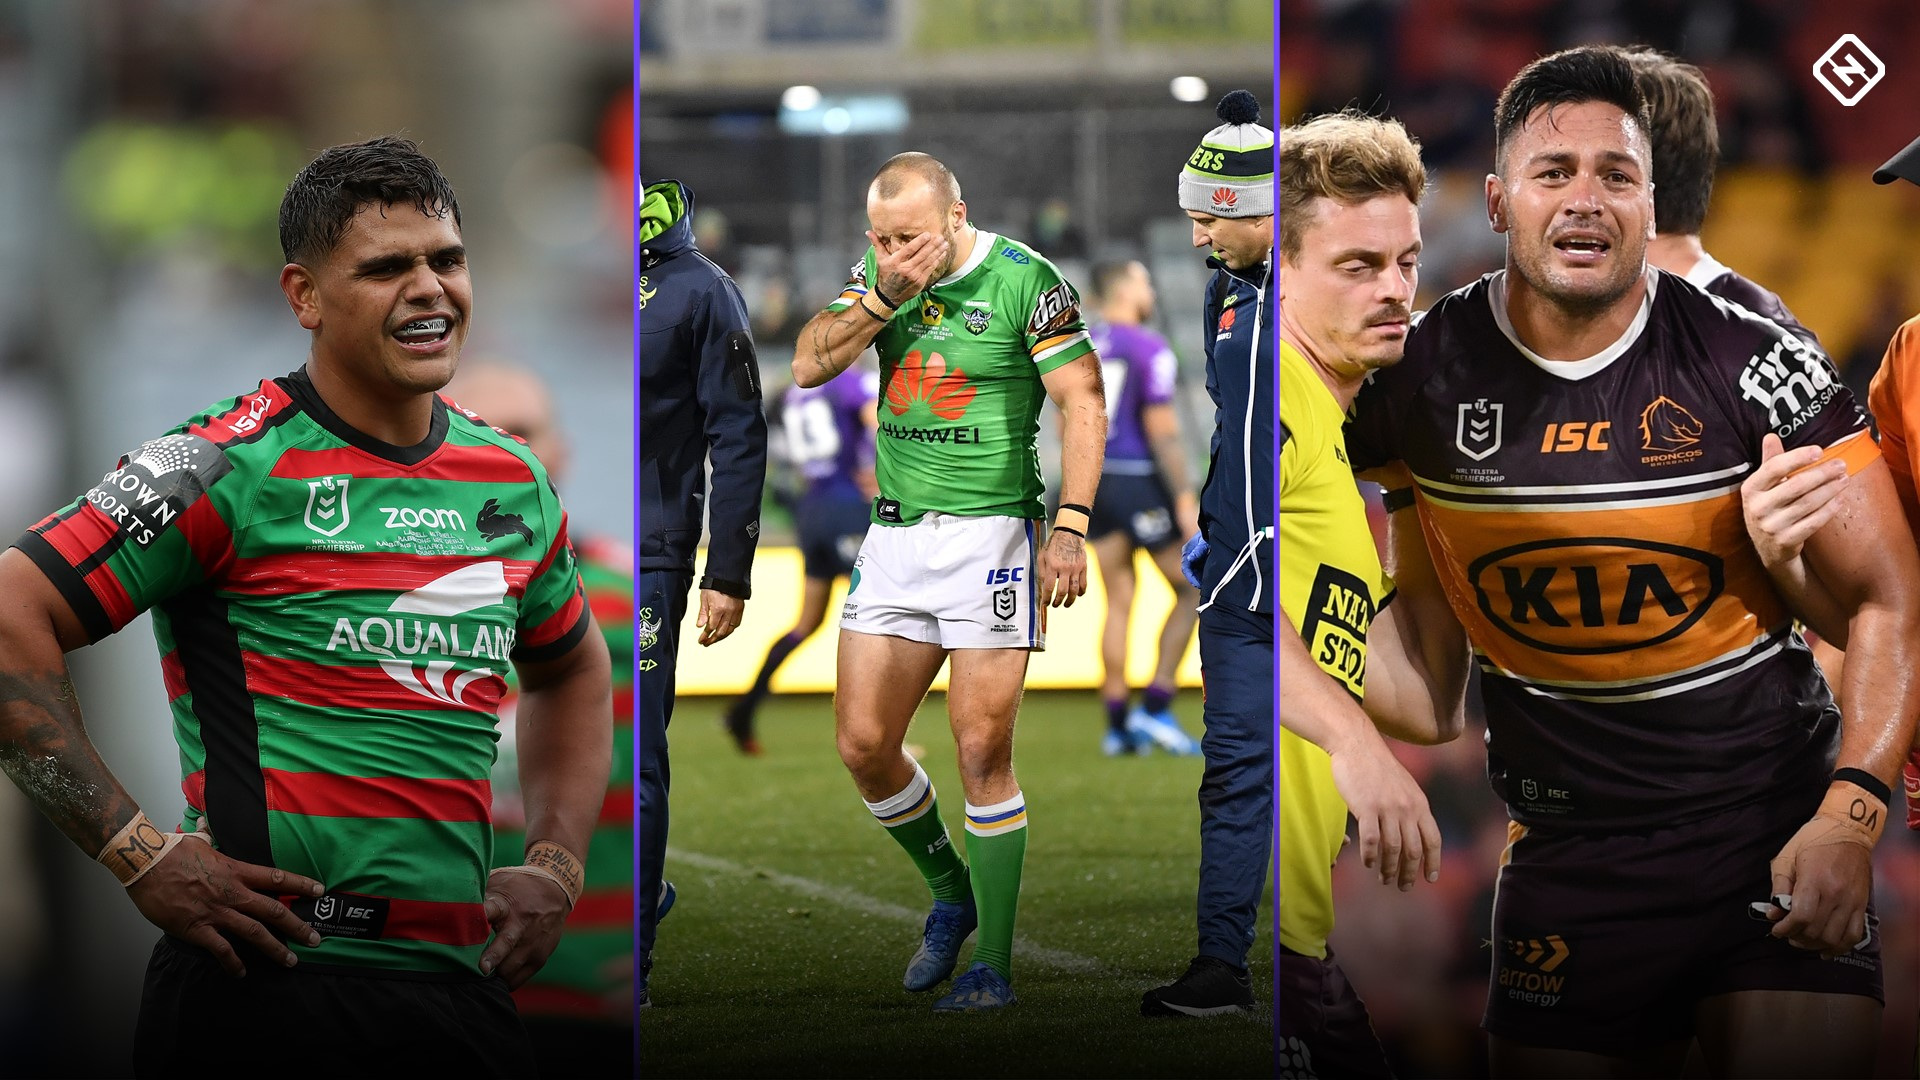 Nrl 2020 Confirmed Team Lists For Round 10 Sporting News Australia